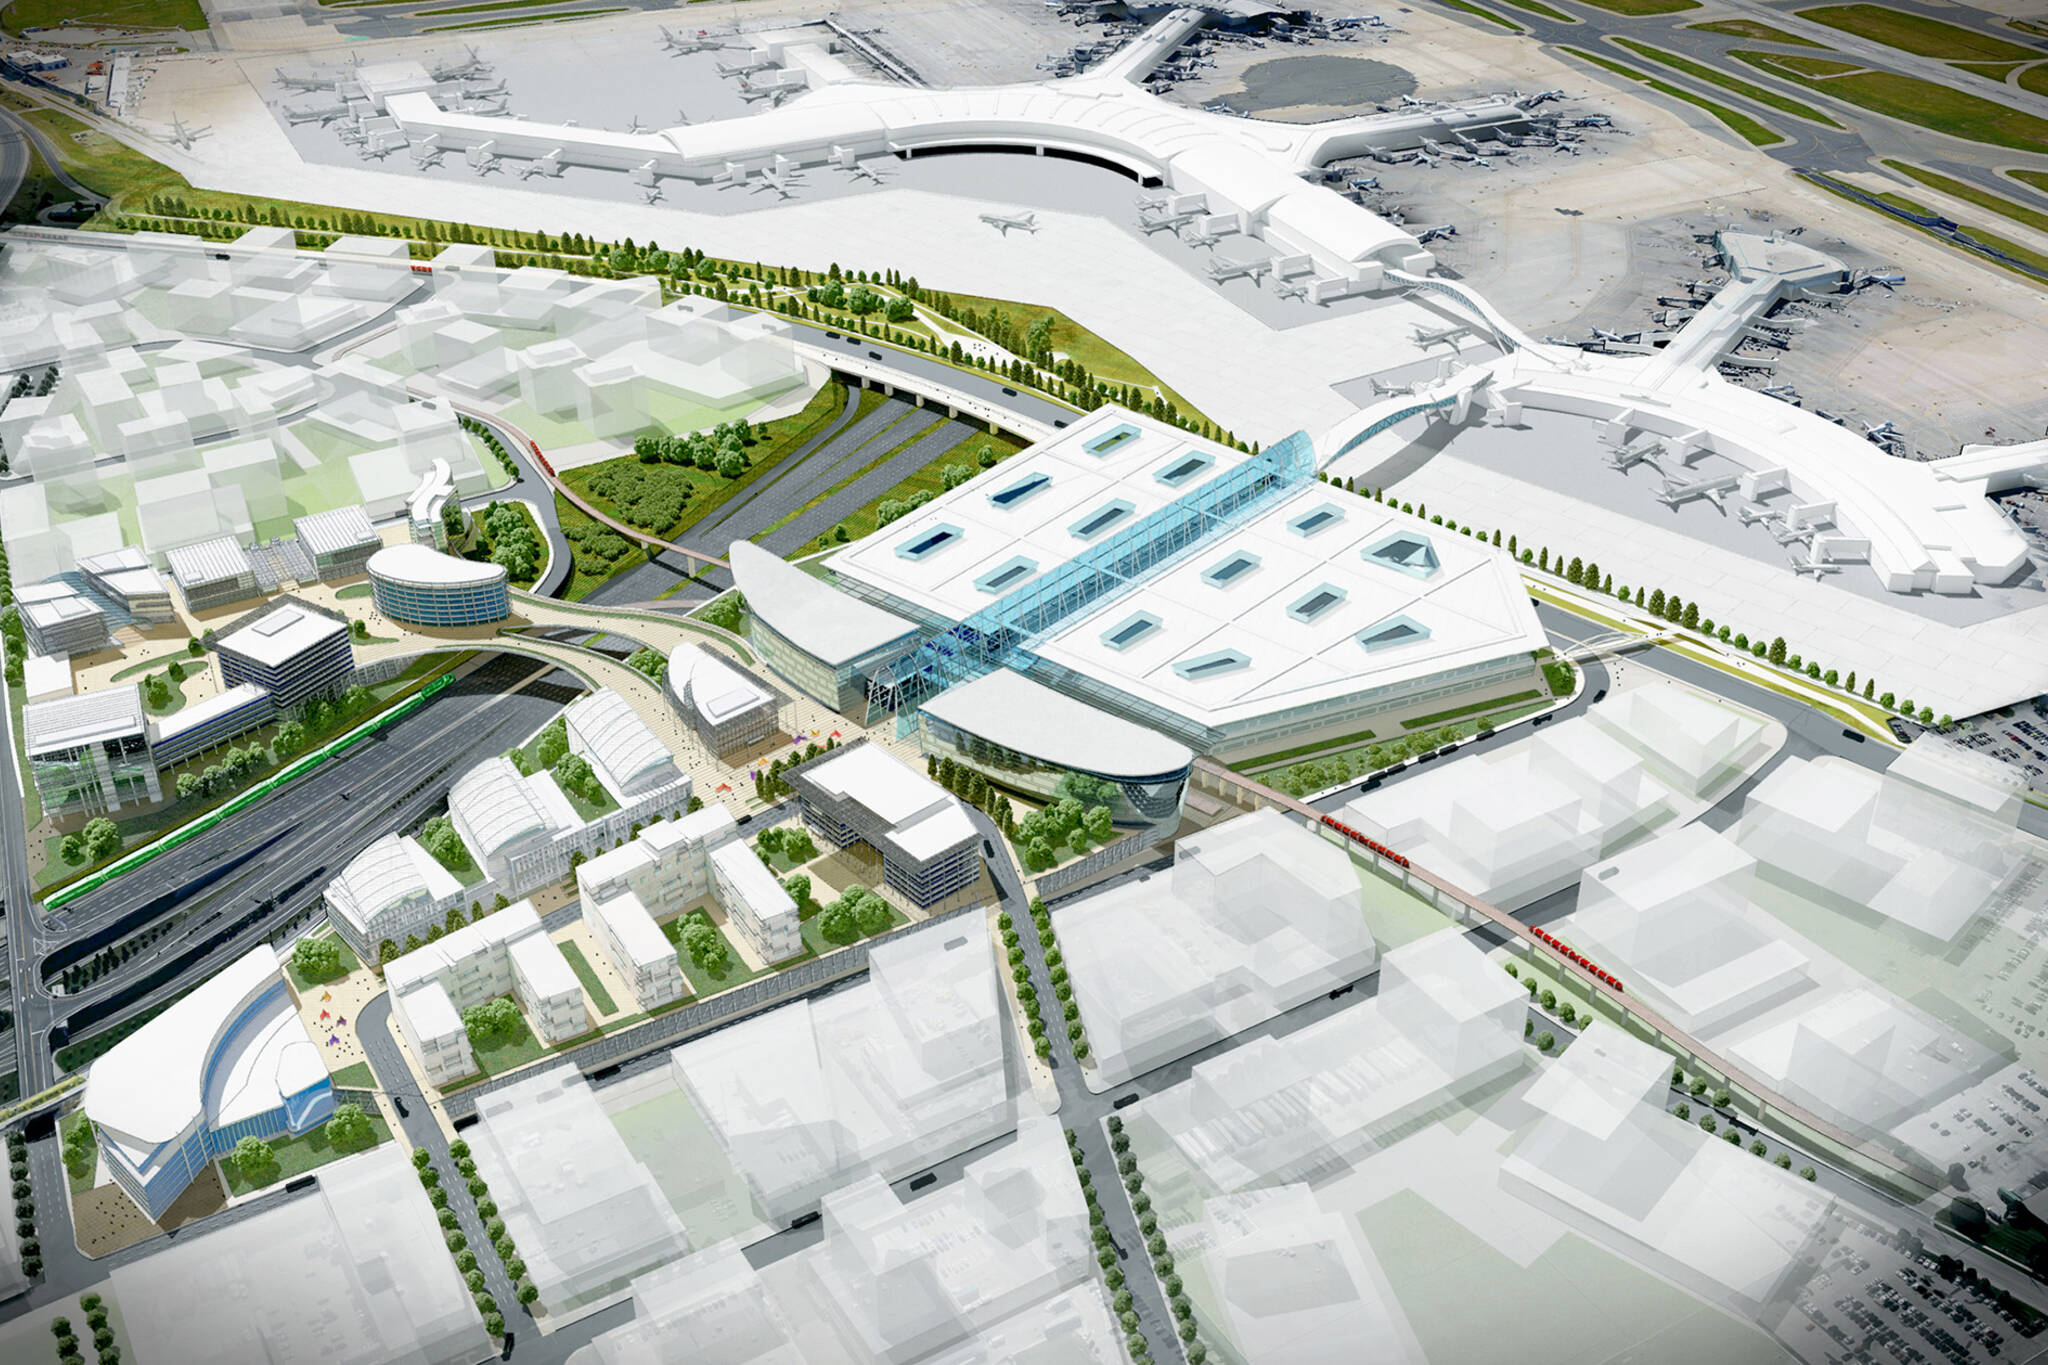 toronto airport expansion